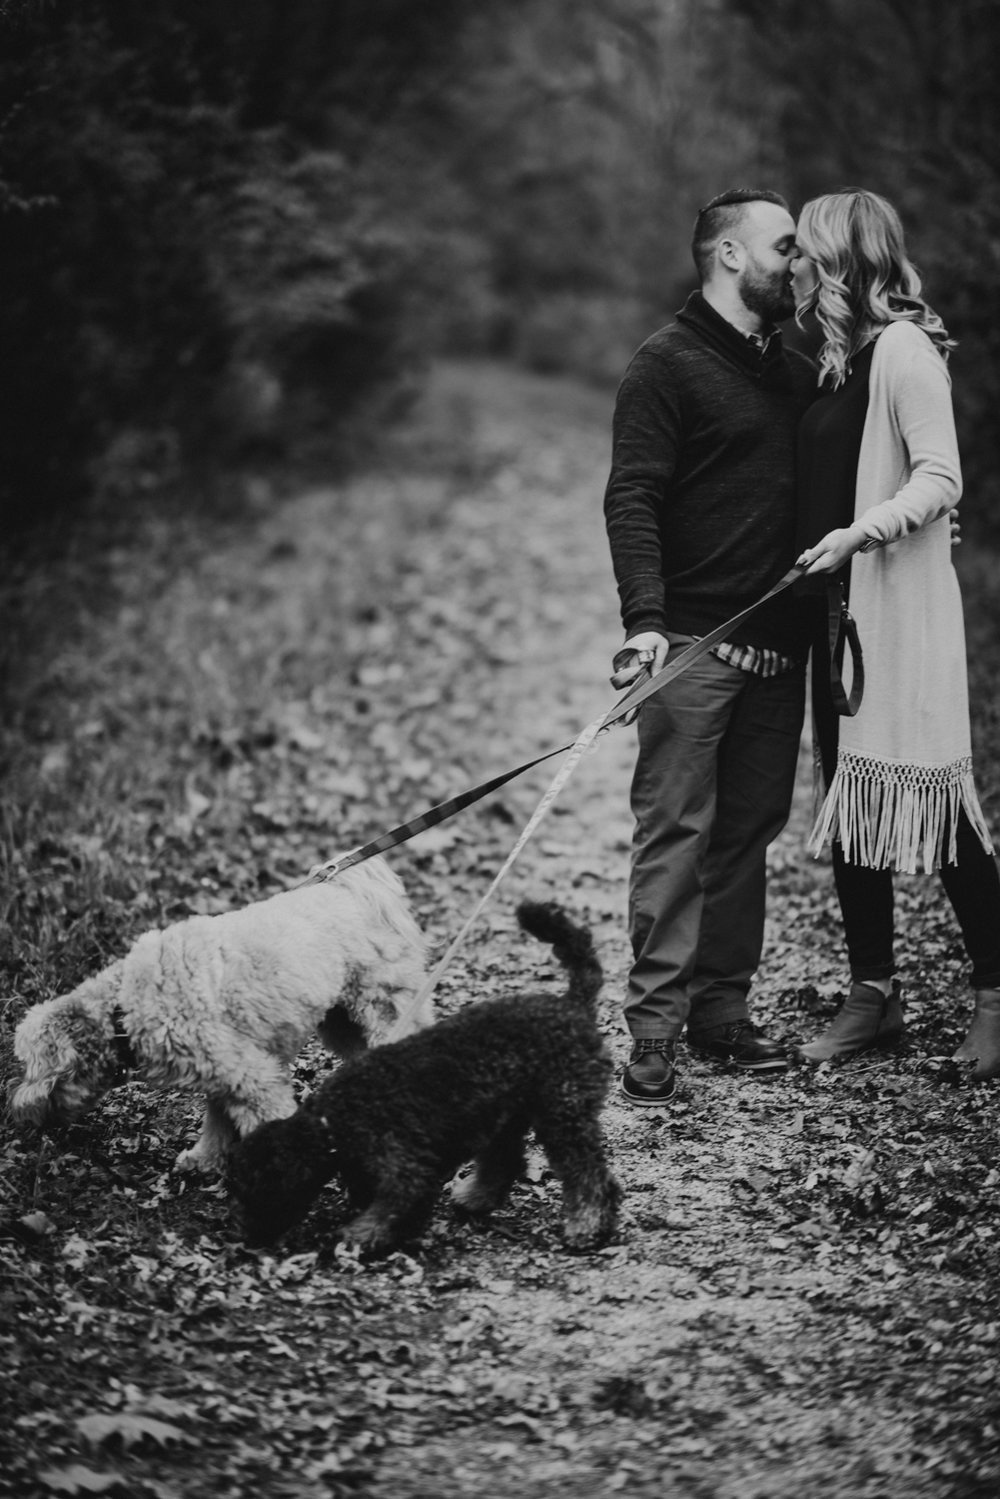 outdoorsy-fall-engagement-photos-St-Louis-2.jpg